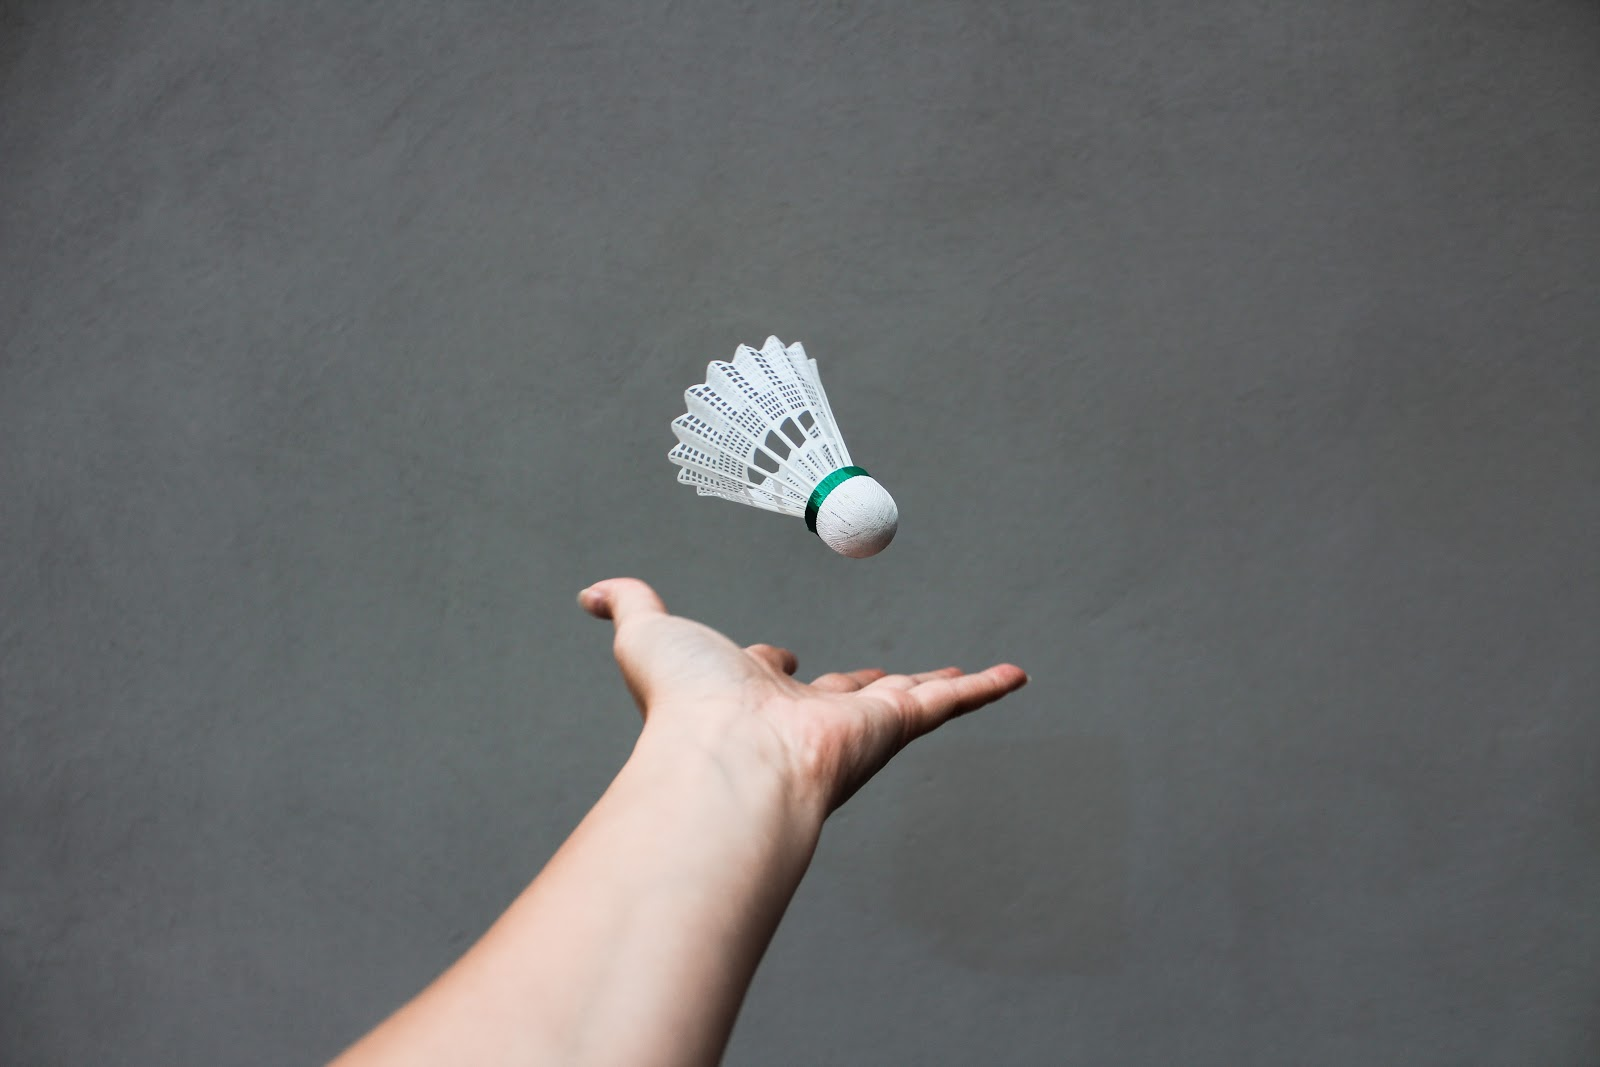 This is an image of a hand tossing a white synthetic shuttlecock up into the air.